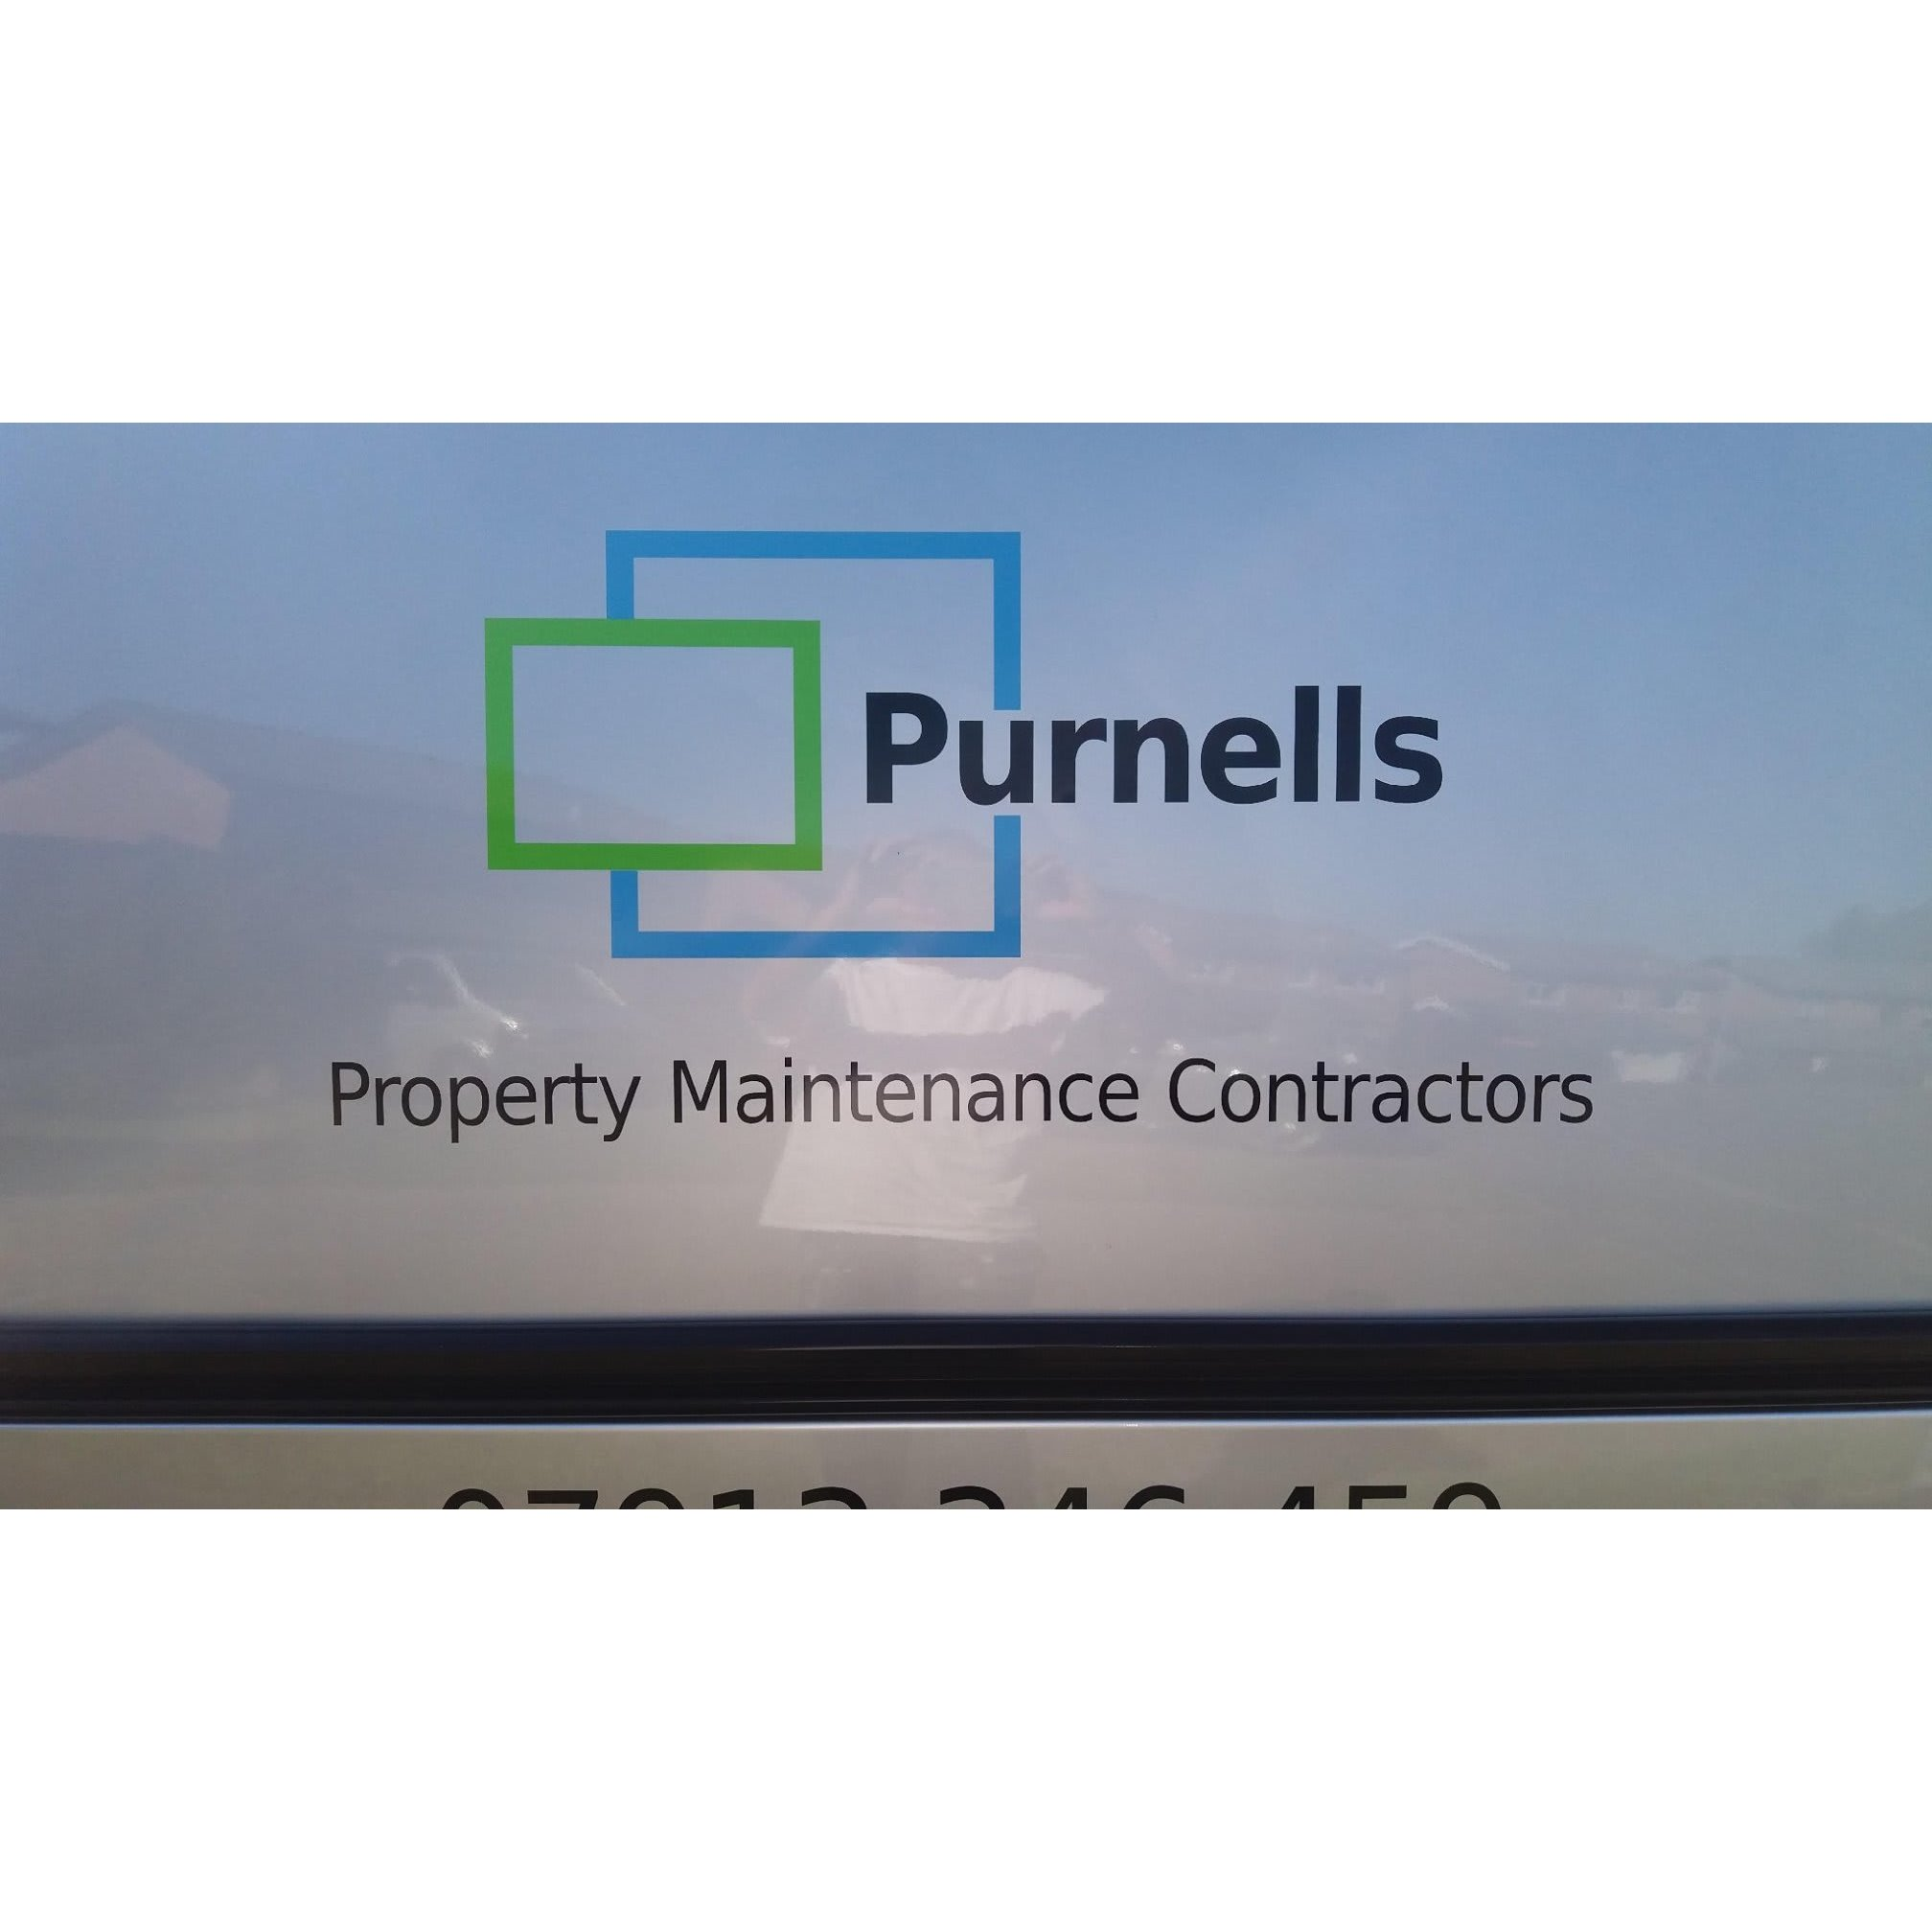 Purnells Property Maintenance